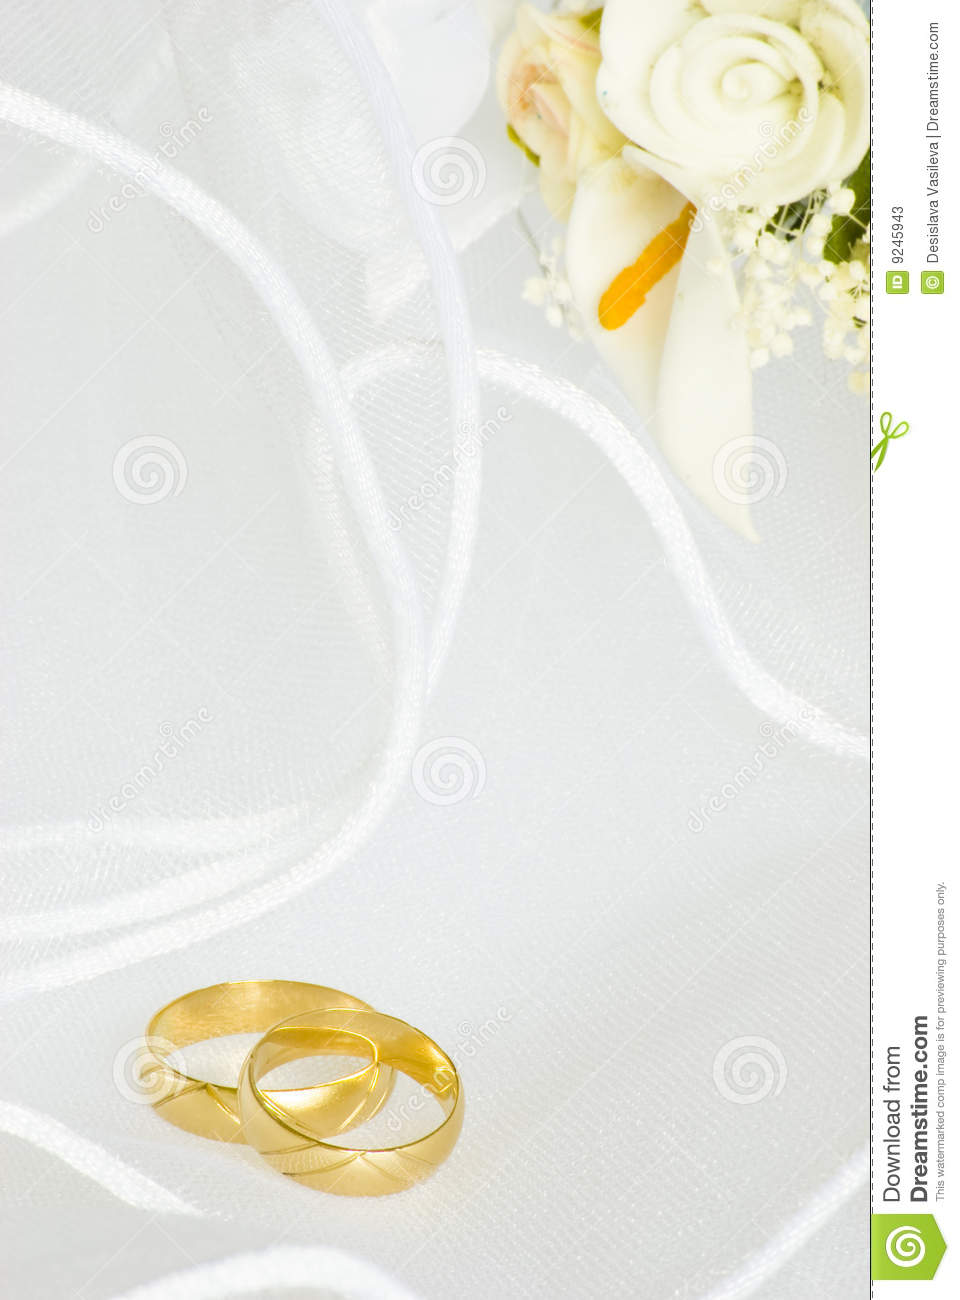 Wedding Invitation Rings And Flowers Over Veil Stock